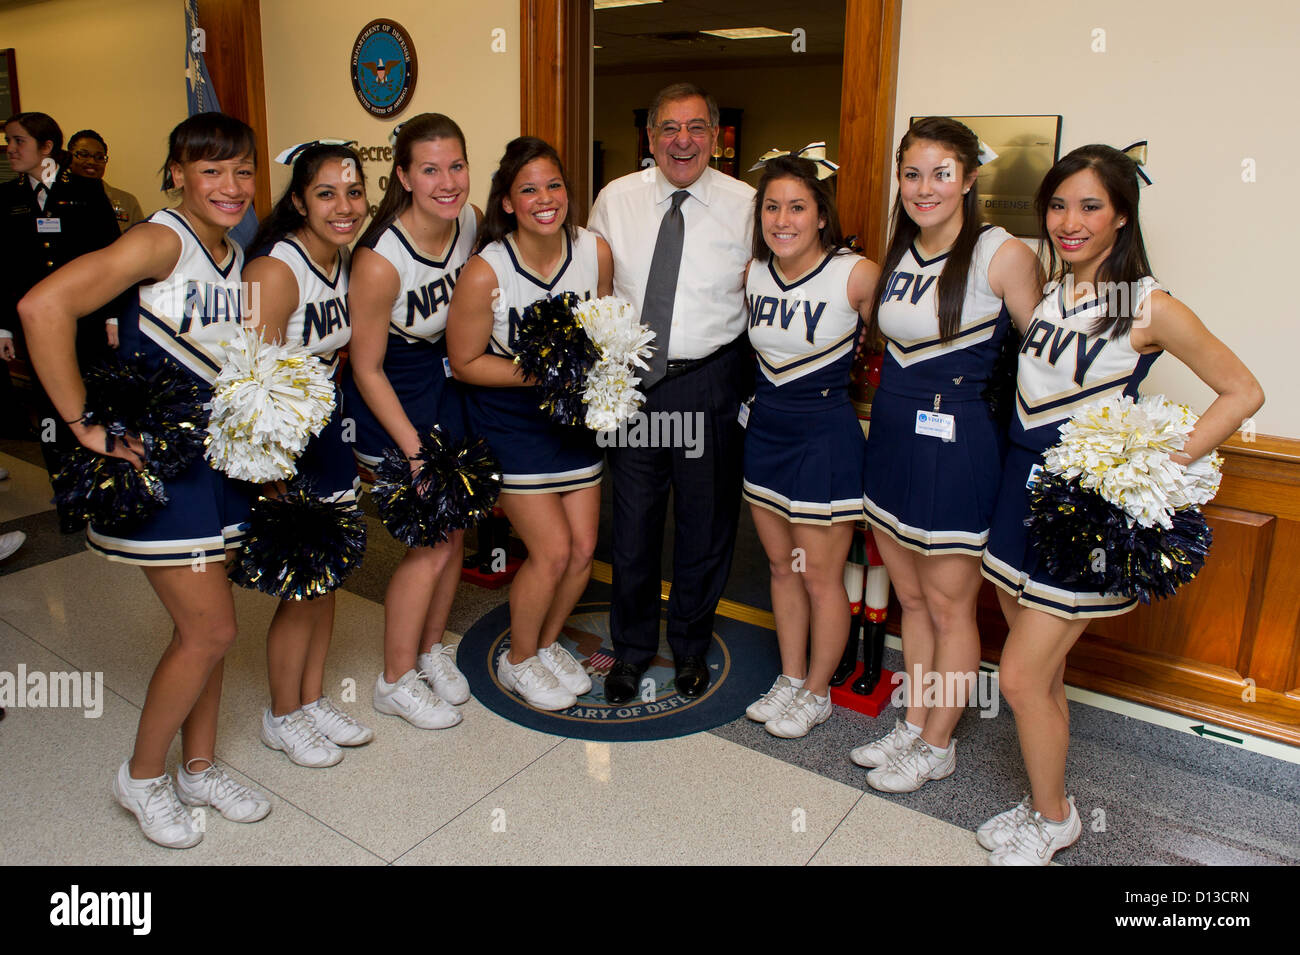 US Secretary of Defense Leon Panetta poses with the US Naval Academy Midshipmen cheerleaders during a pep rally - Stock Image